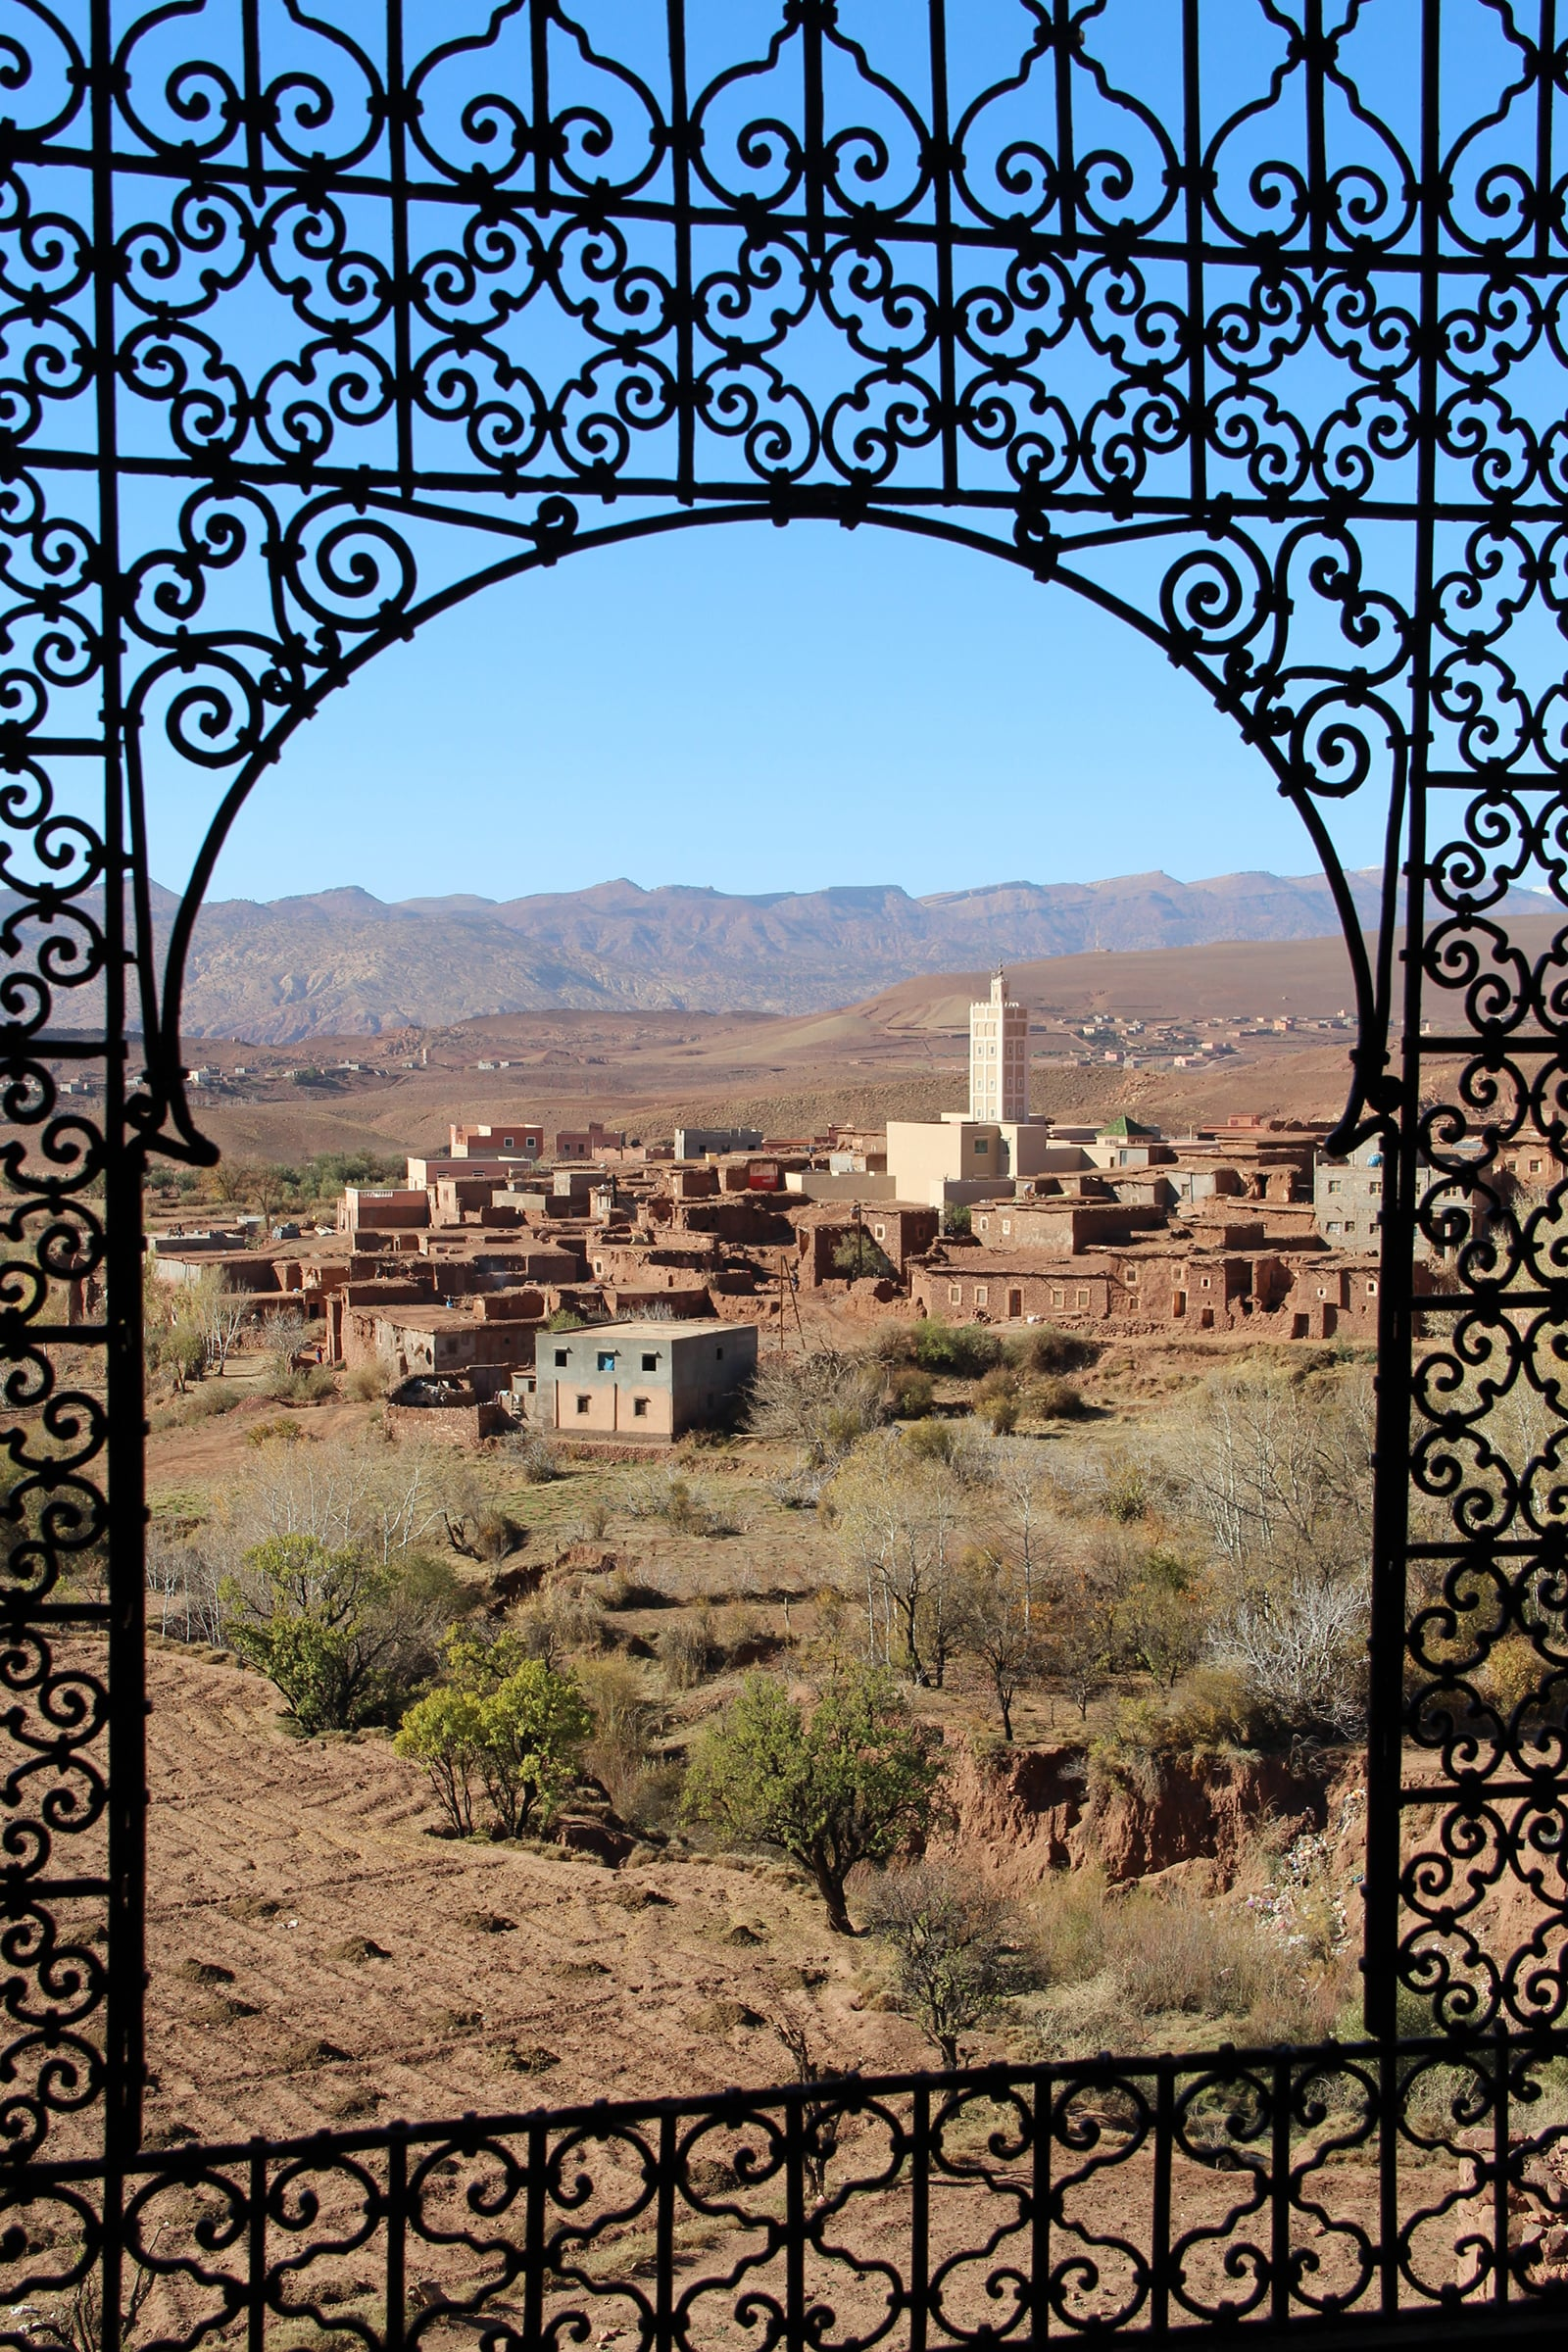 View of a village from a window of the Telouet kasbah